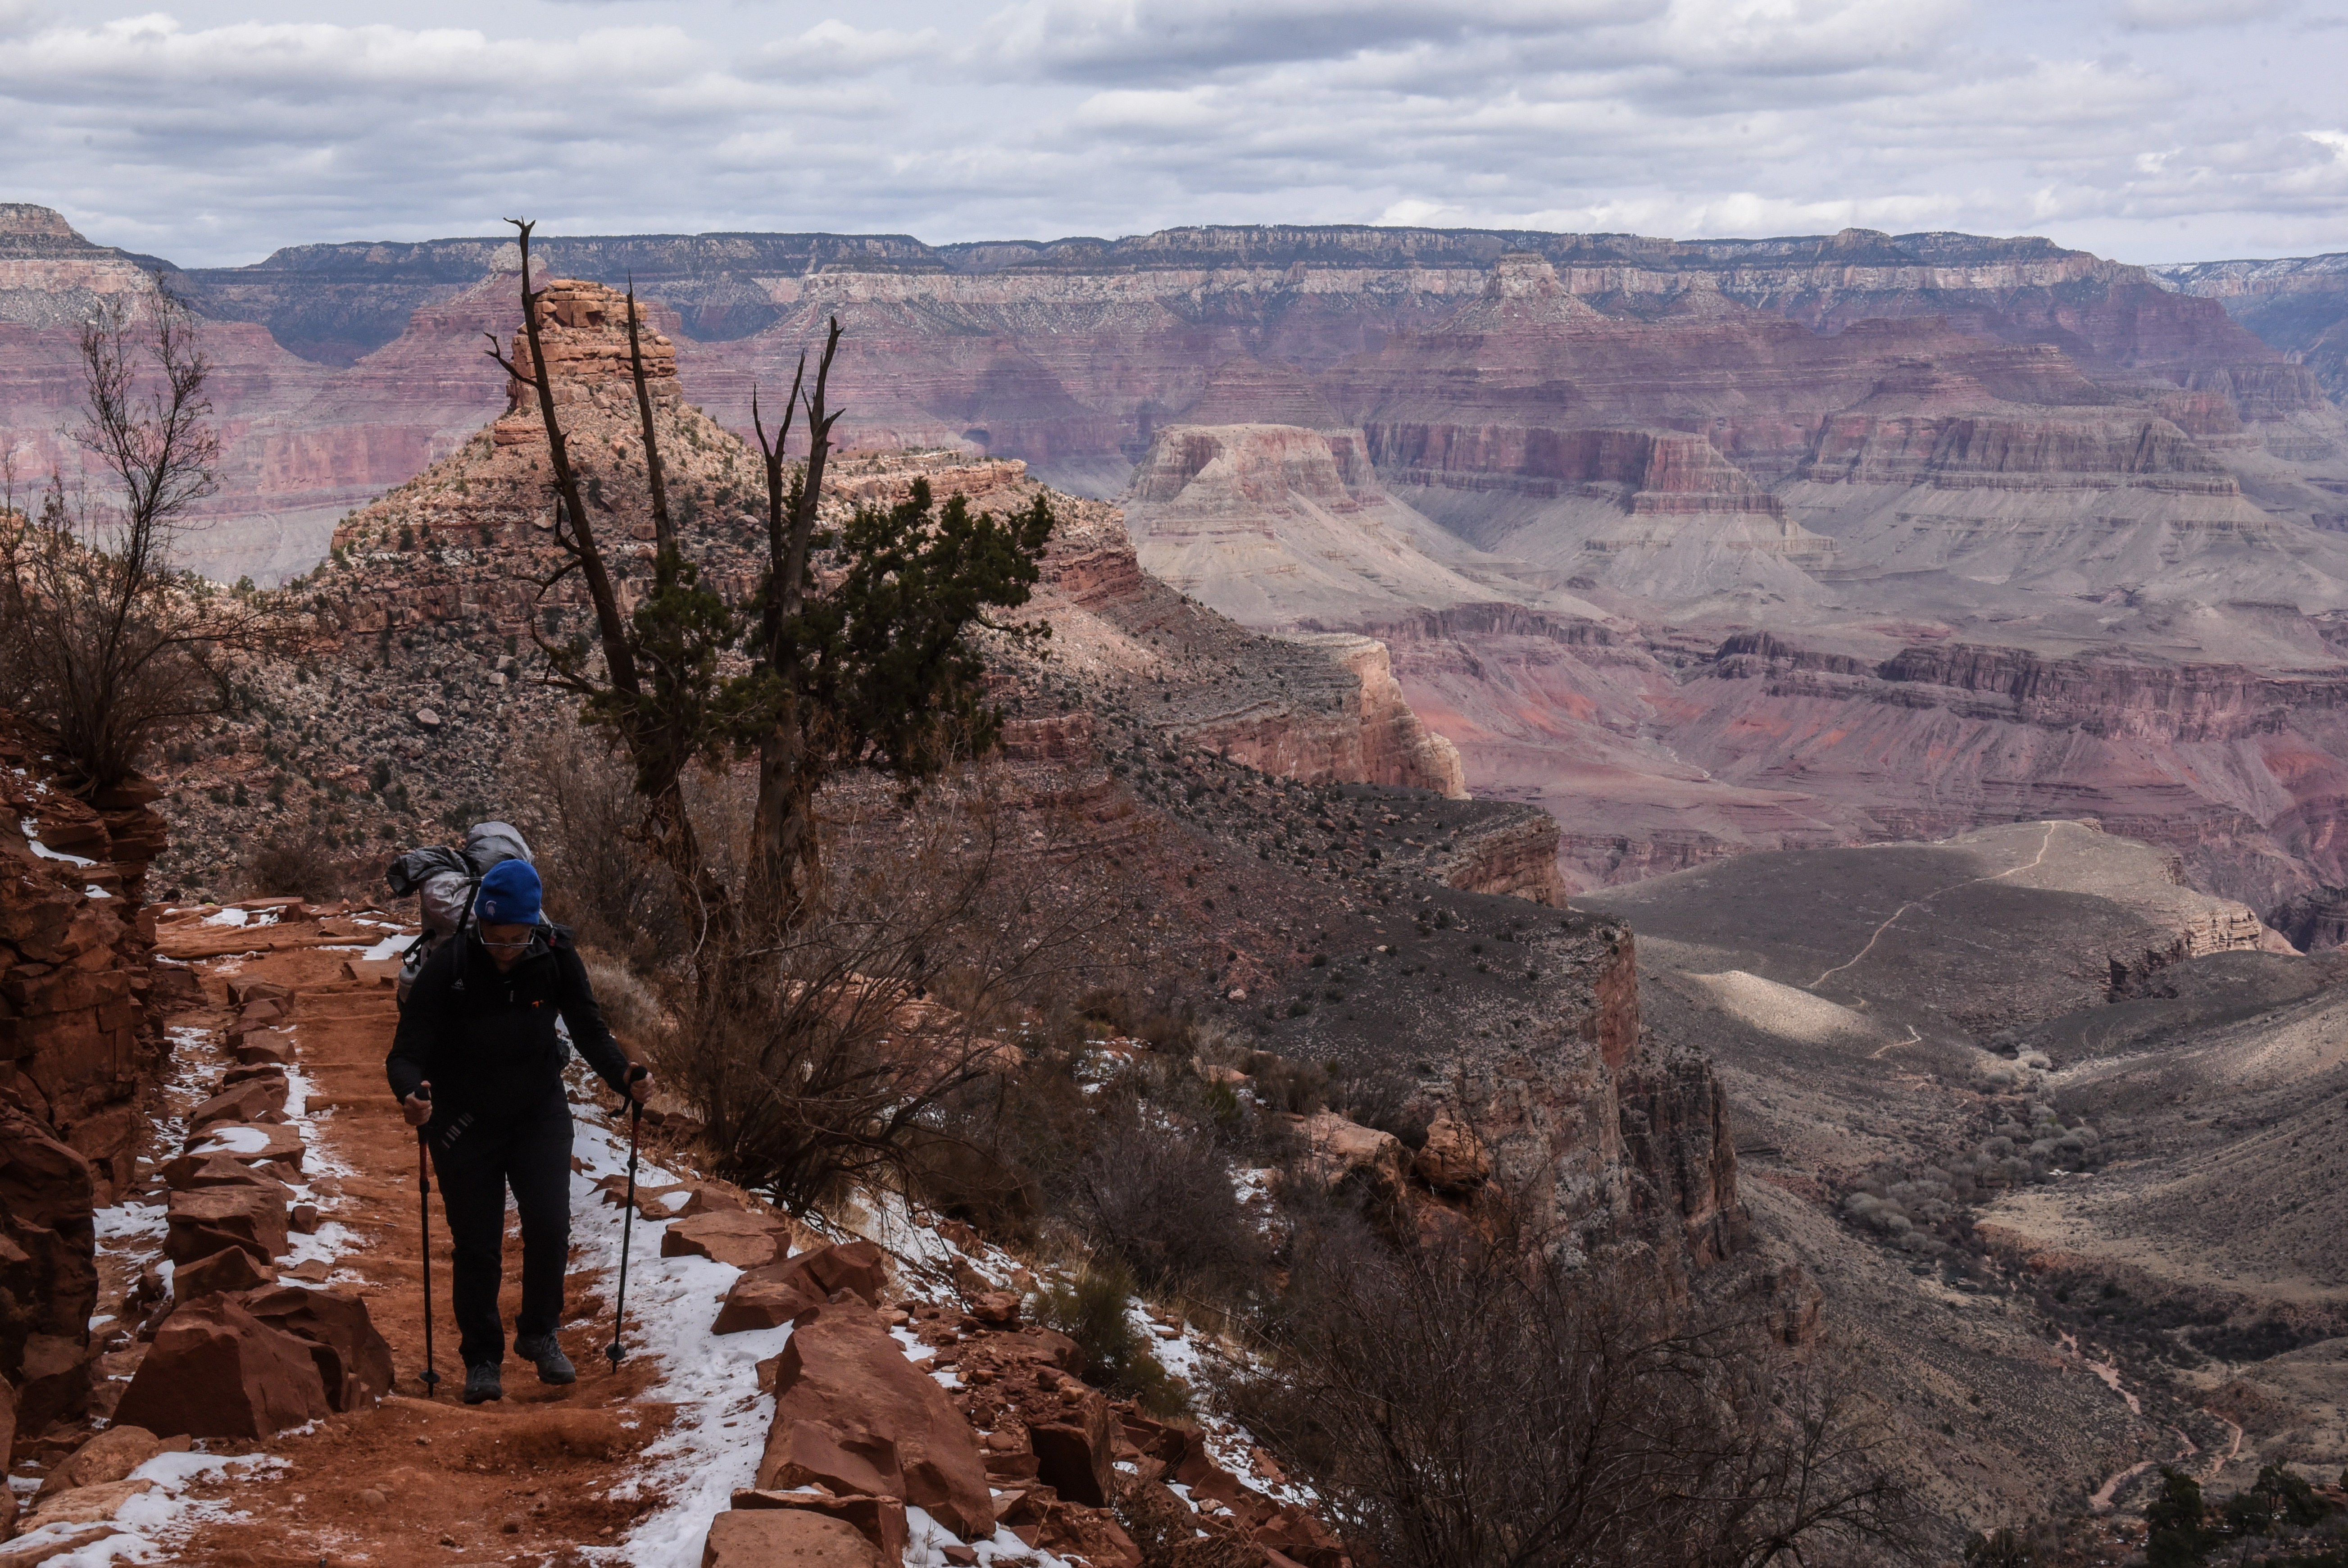 A person hikes on the Bright Angel Trail in the Grand Canyon near Grand Canyon Village, Arizona, U.S., February 22, 2018. REUTERS/Stephanie Keith